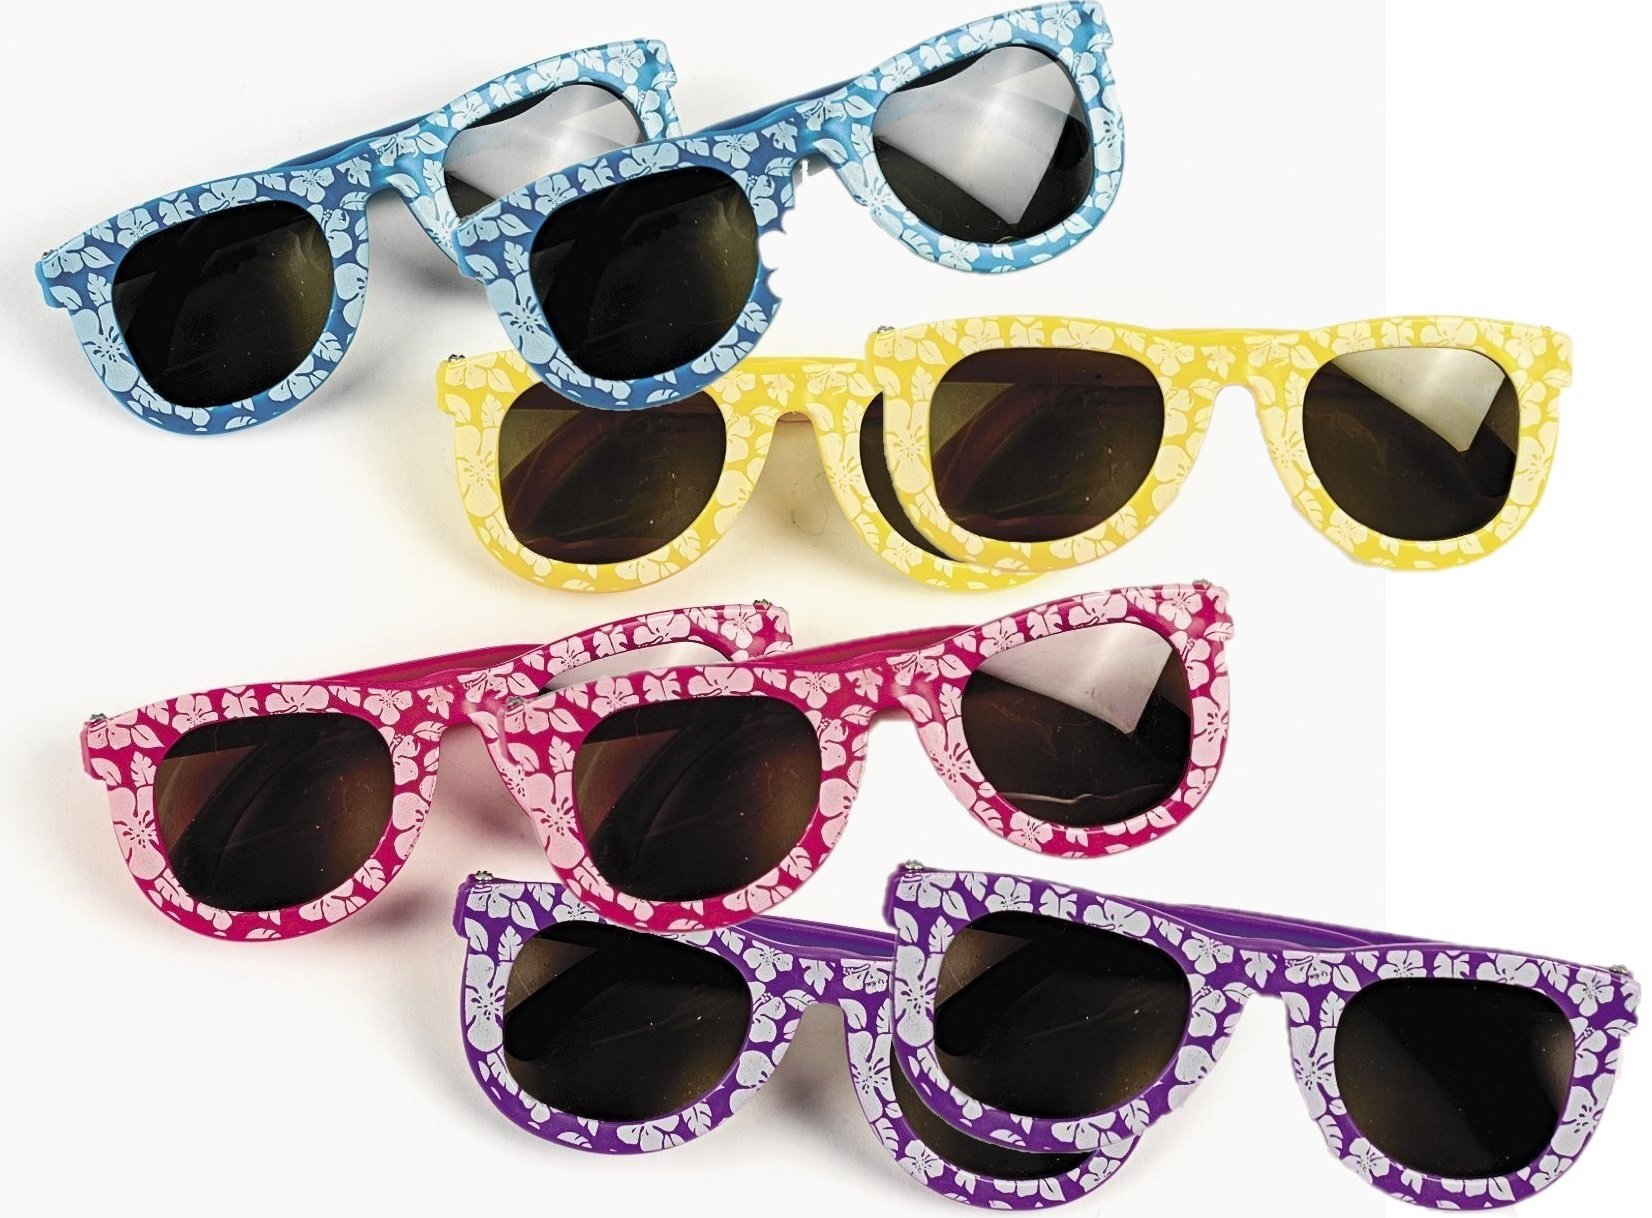 Kids' Hibiscus Sunglasses, 24 Pairs